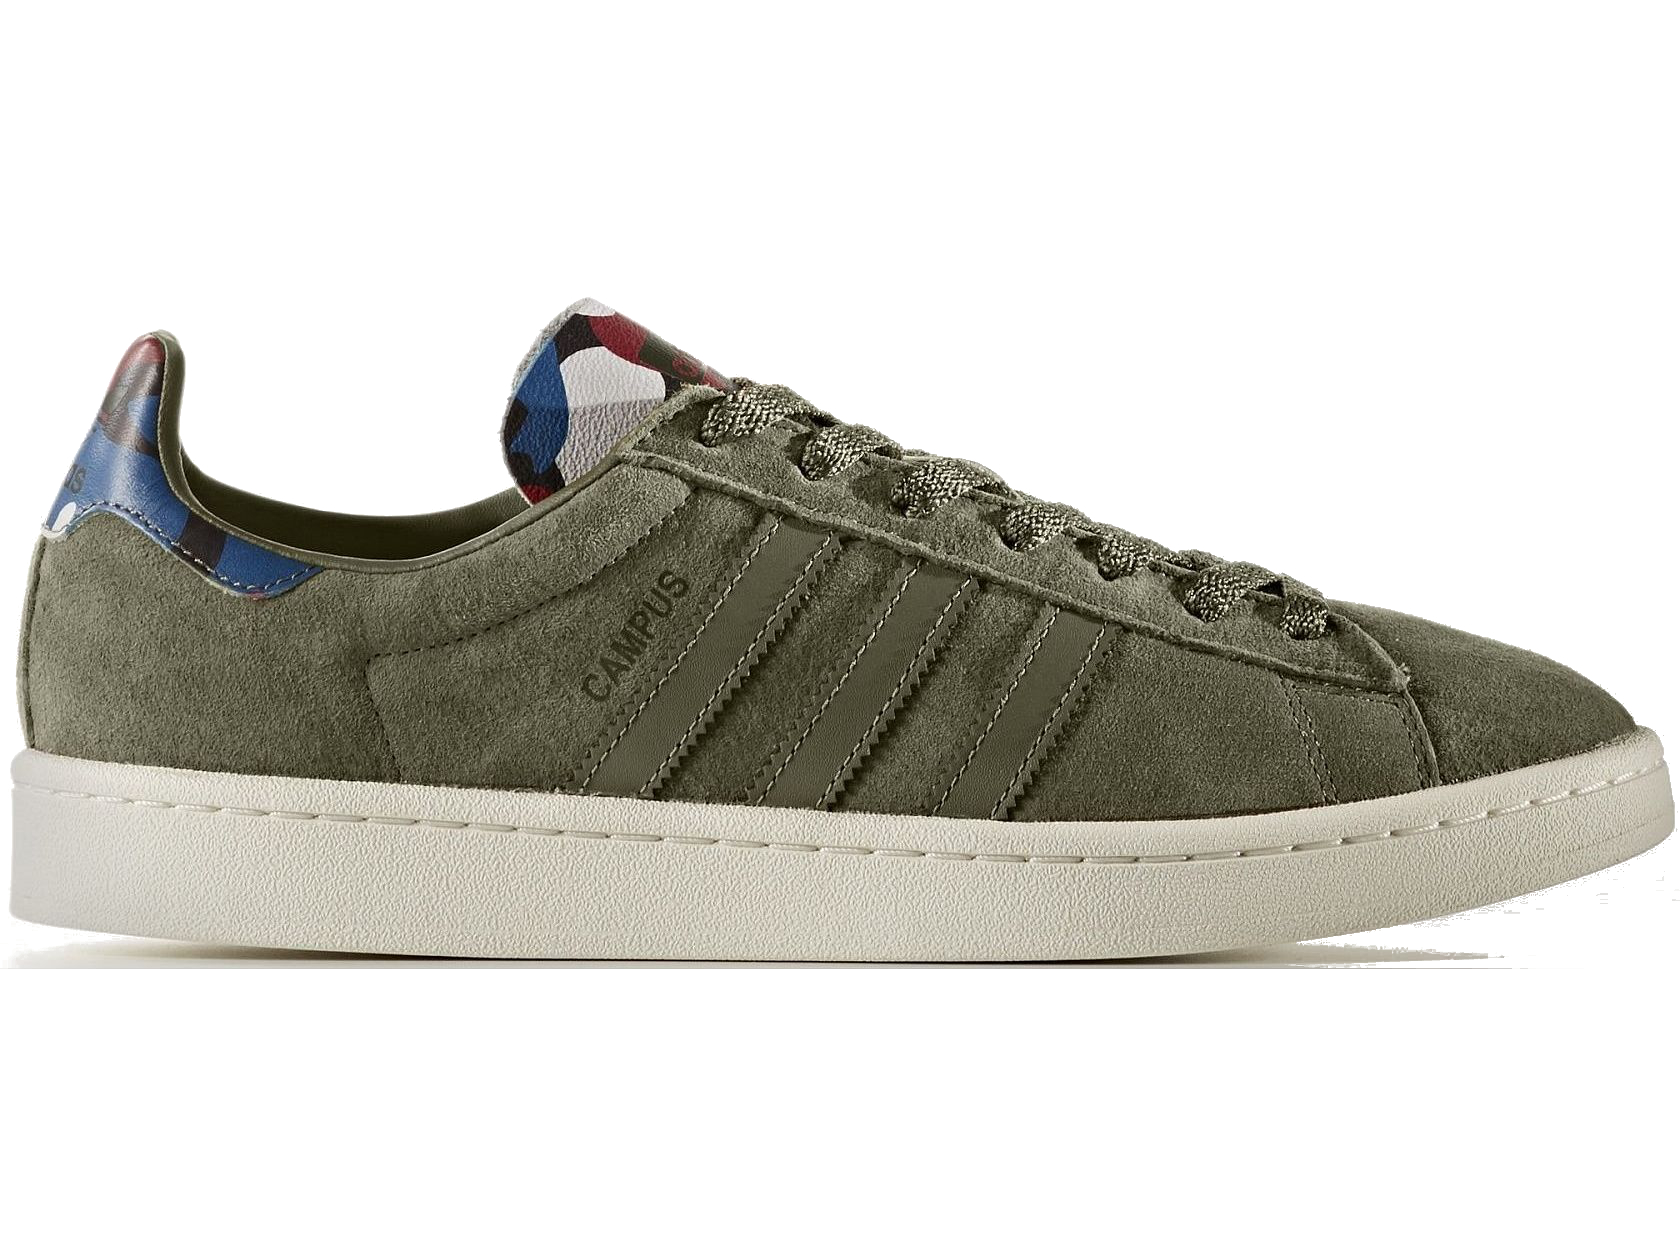 outlet store 4d01a 6bbd6 Adidas CAMPUS (45 13) Buty Męskie - 7276604319 - oficjalne archiwum allegro